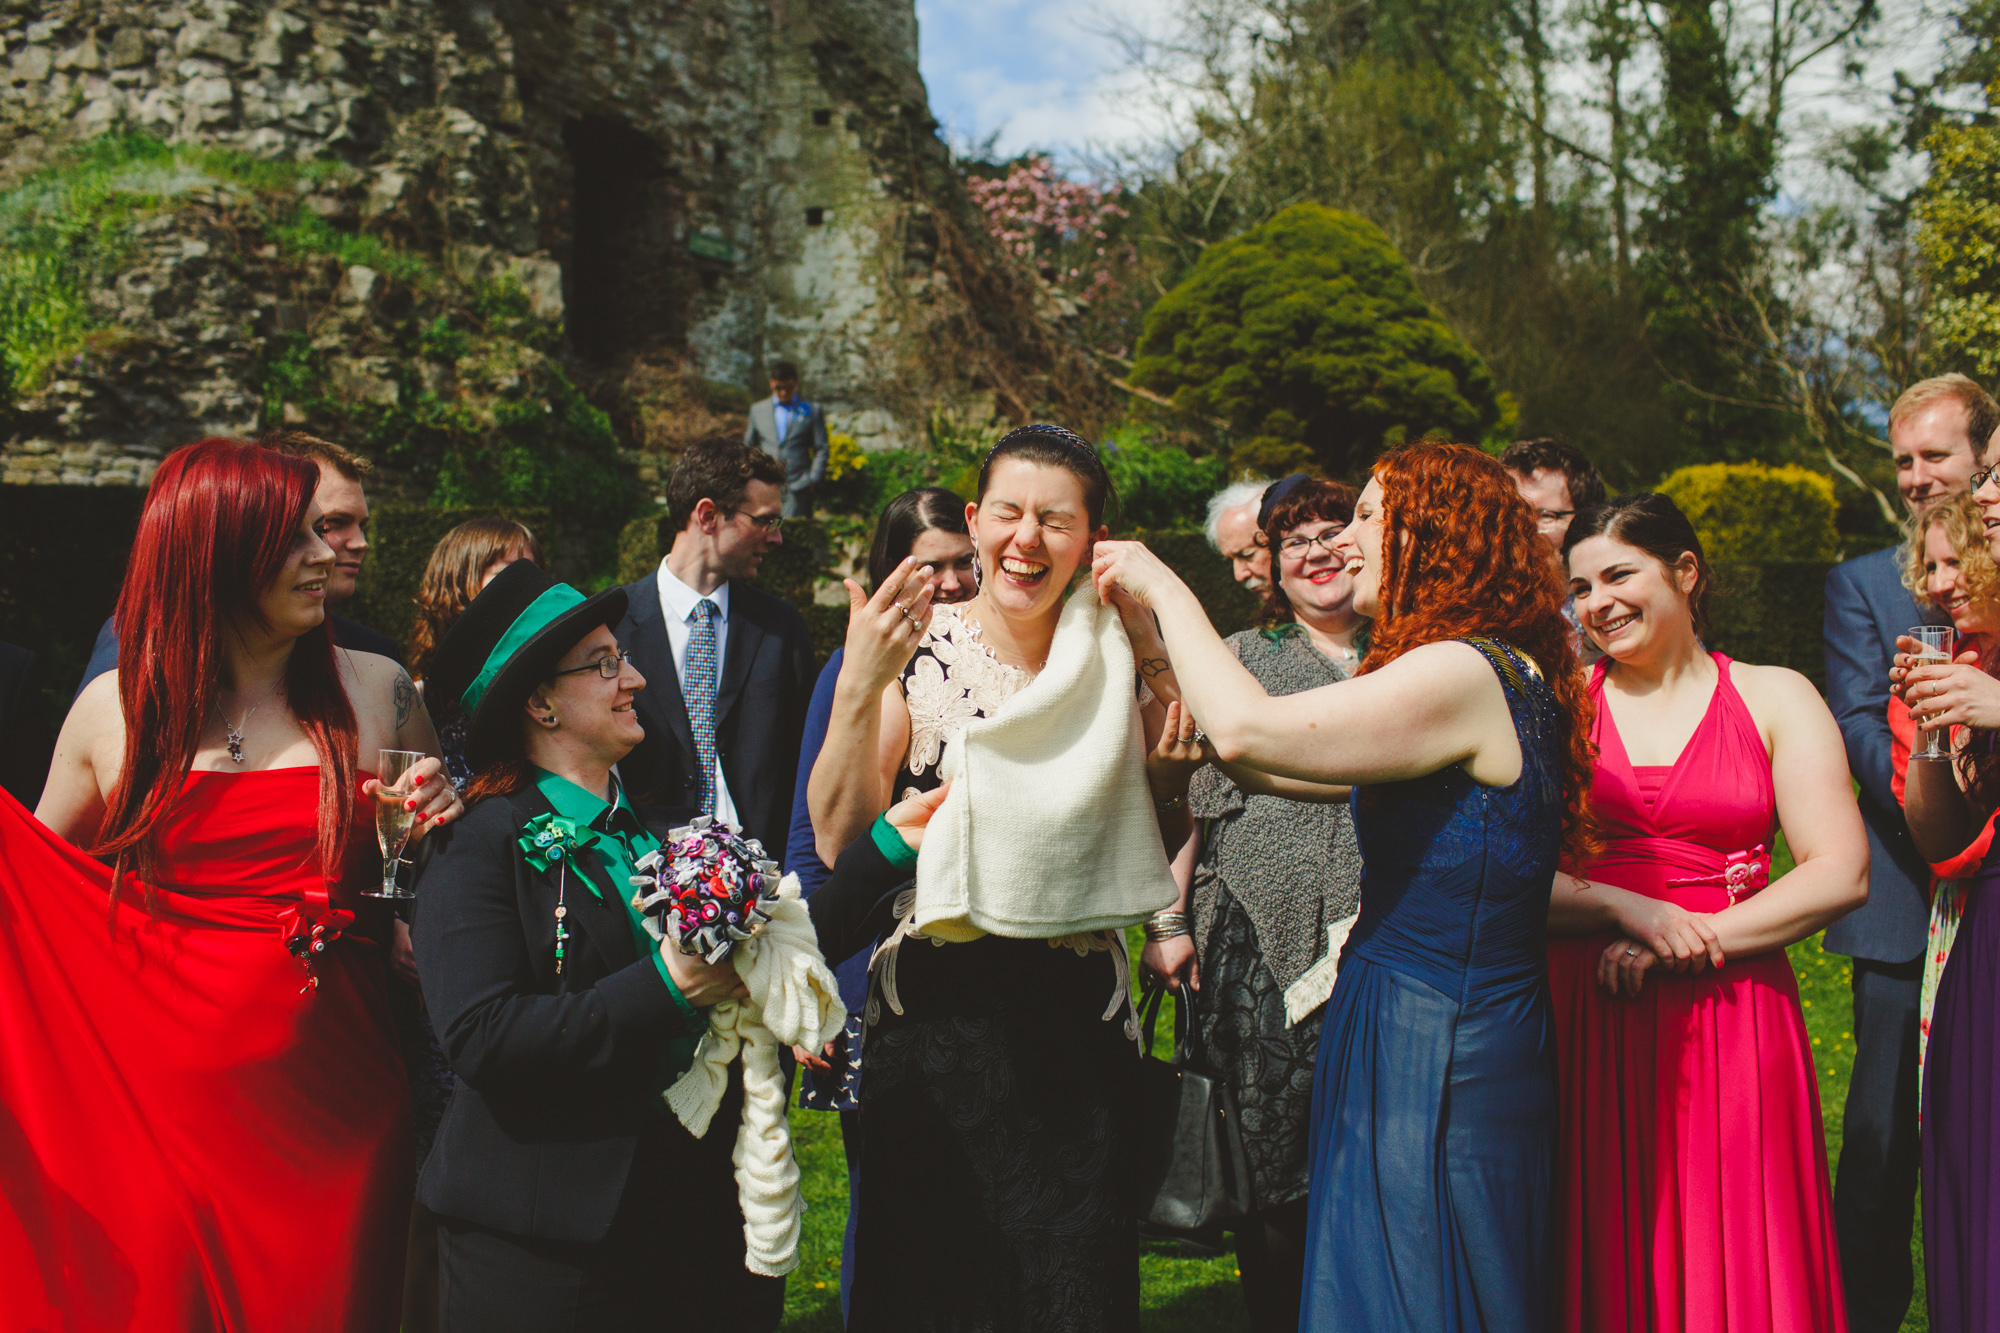 usk-castle-alternative-wedding-photographer-uk-camera-hannah-10.jpg